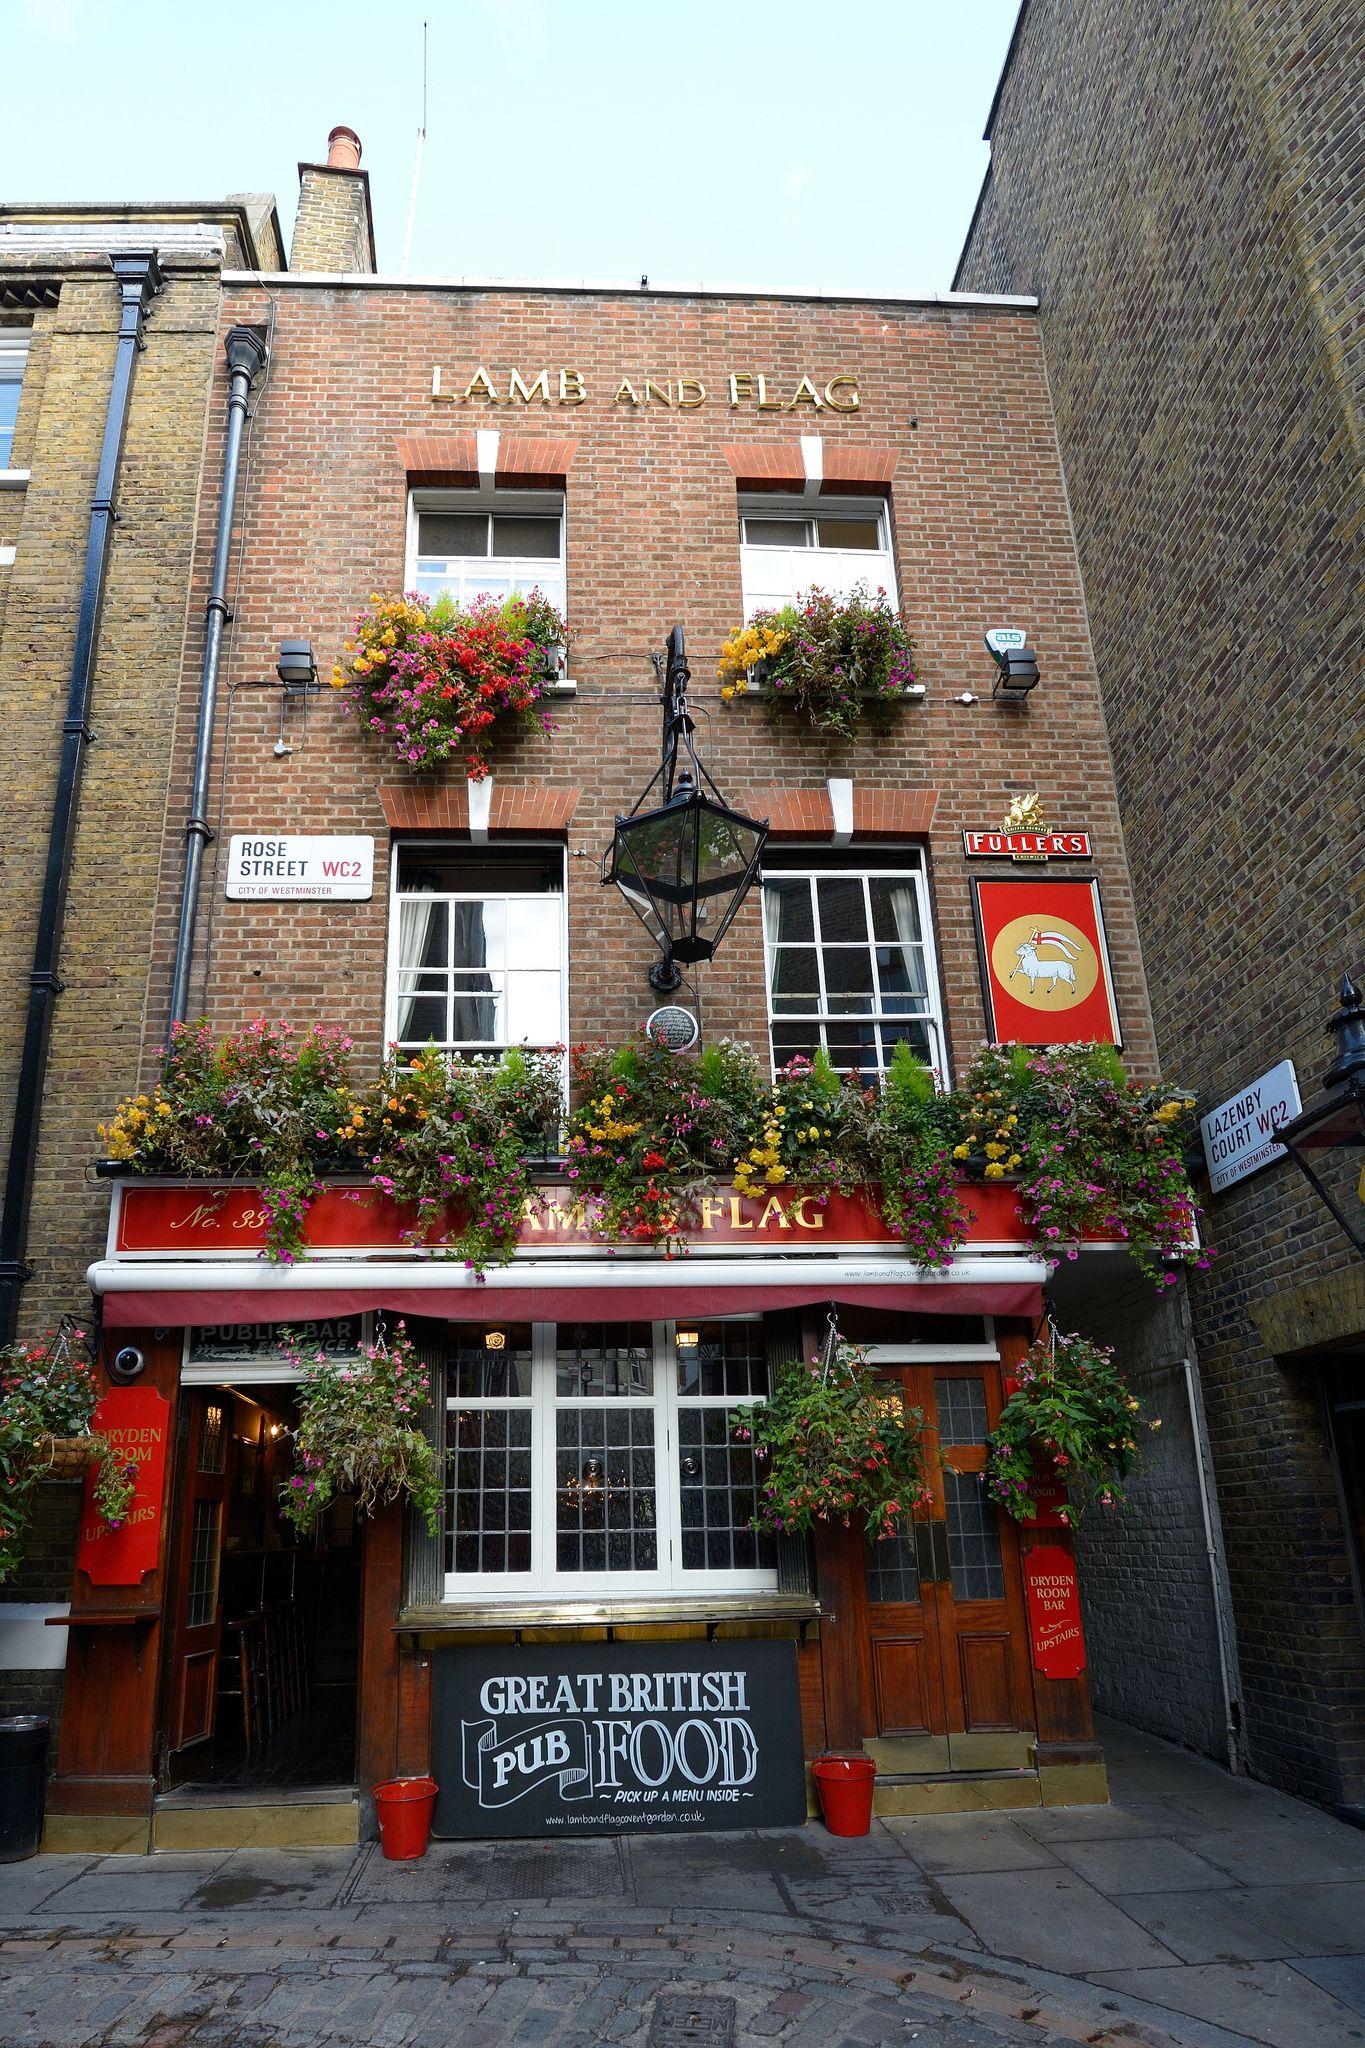 The Lamb and Flag a Fullers pub near Covent Garden